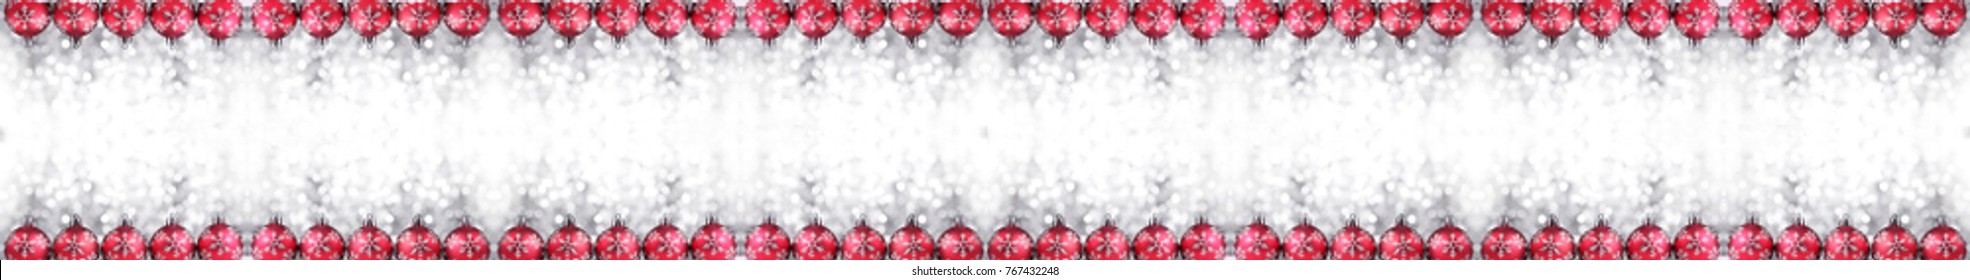 Christmas border or banner with ornaments arranged in a row on show, extra wide and isolated on white background